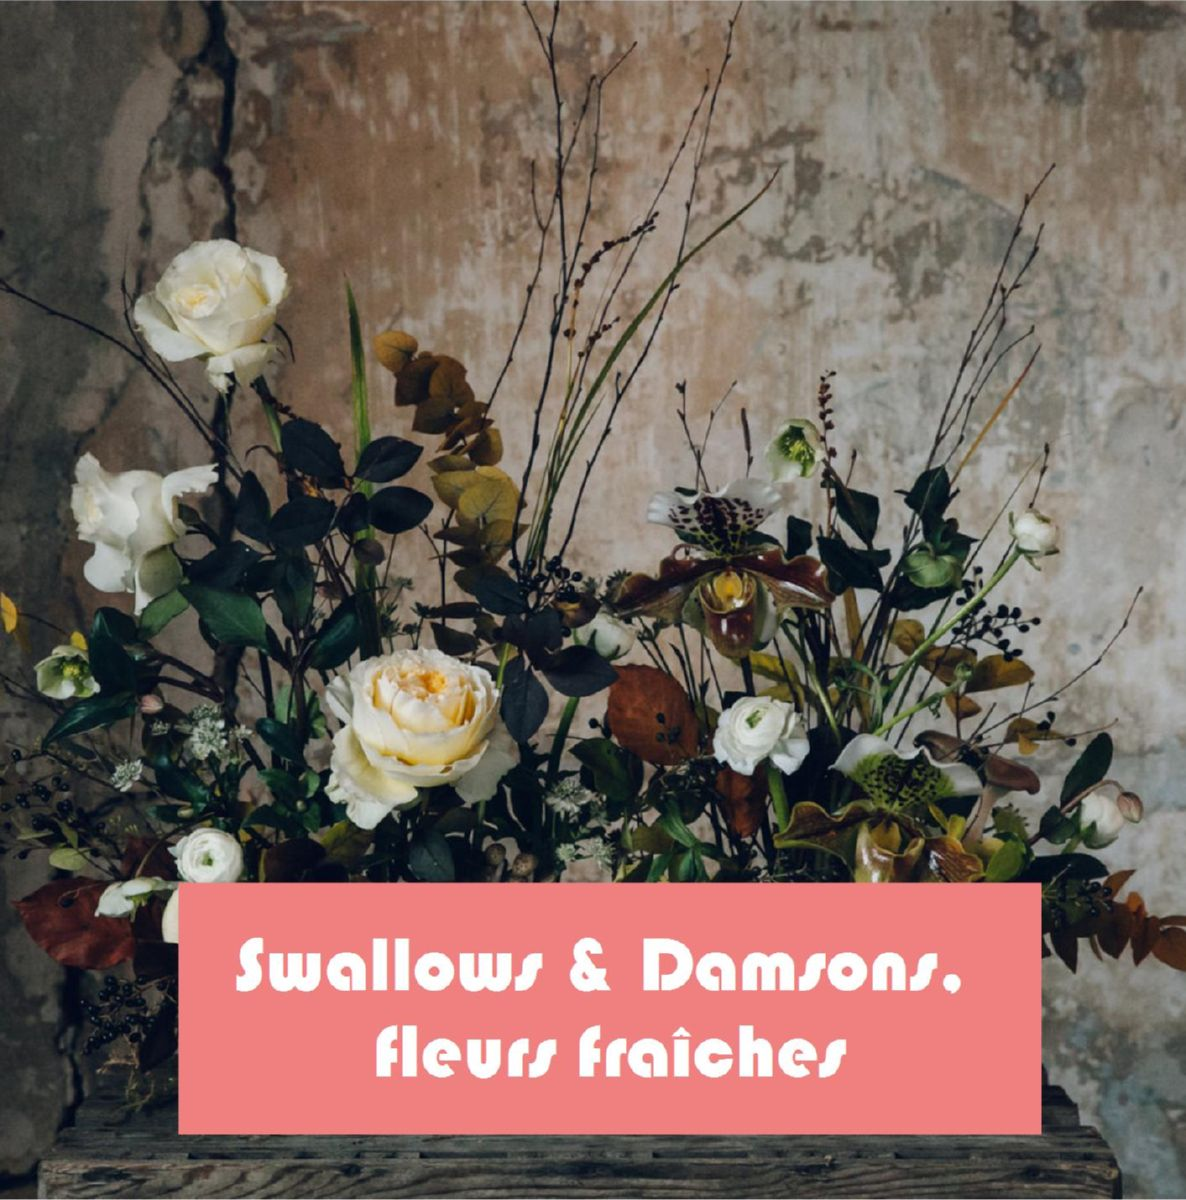 Swallows & Damsons, les fleurs fraîches d'Anna Potter. Photo Anna Potter.